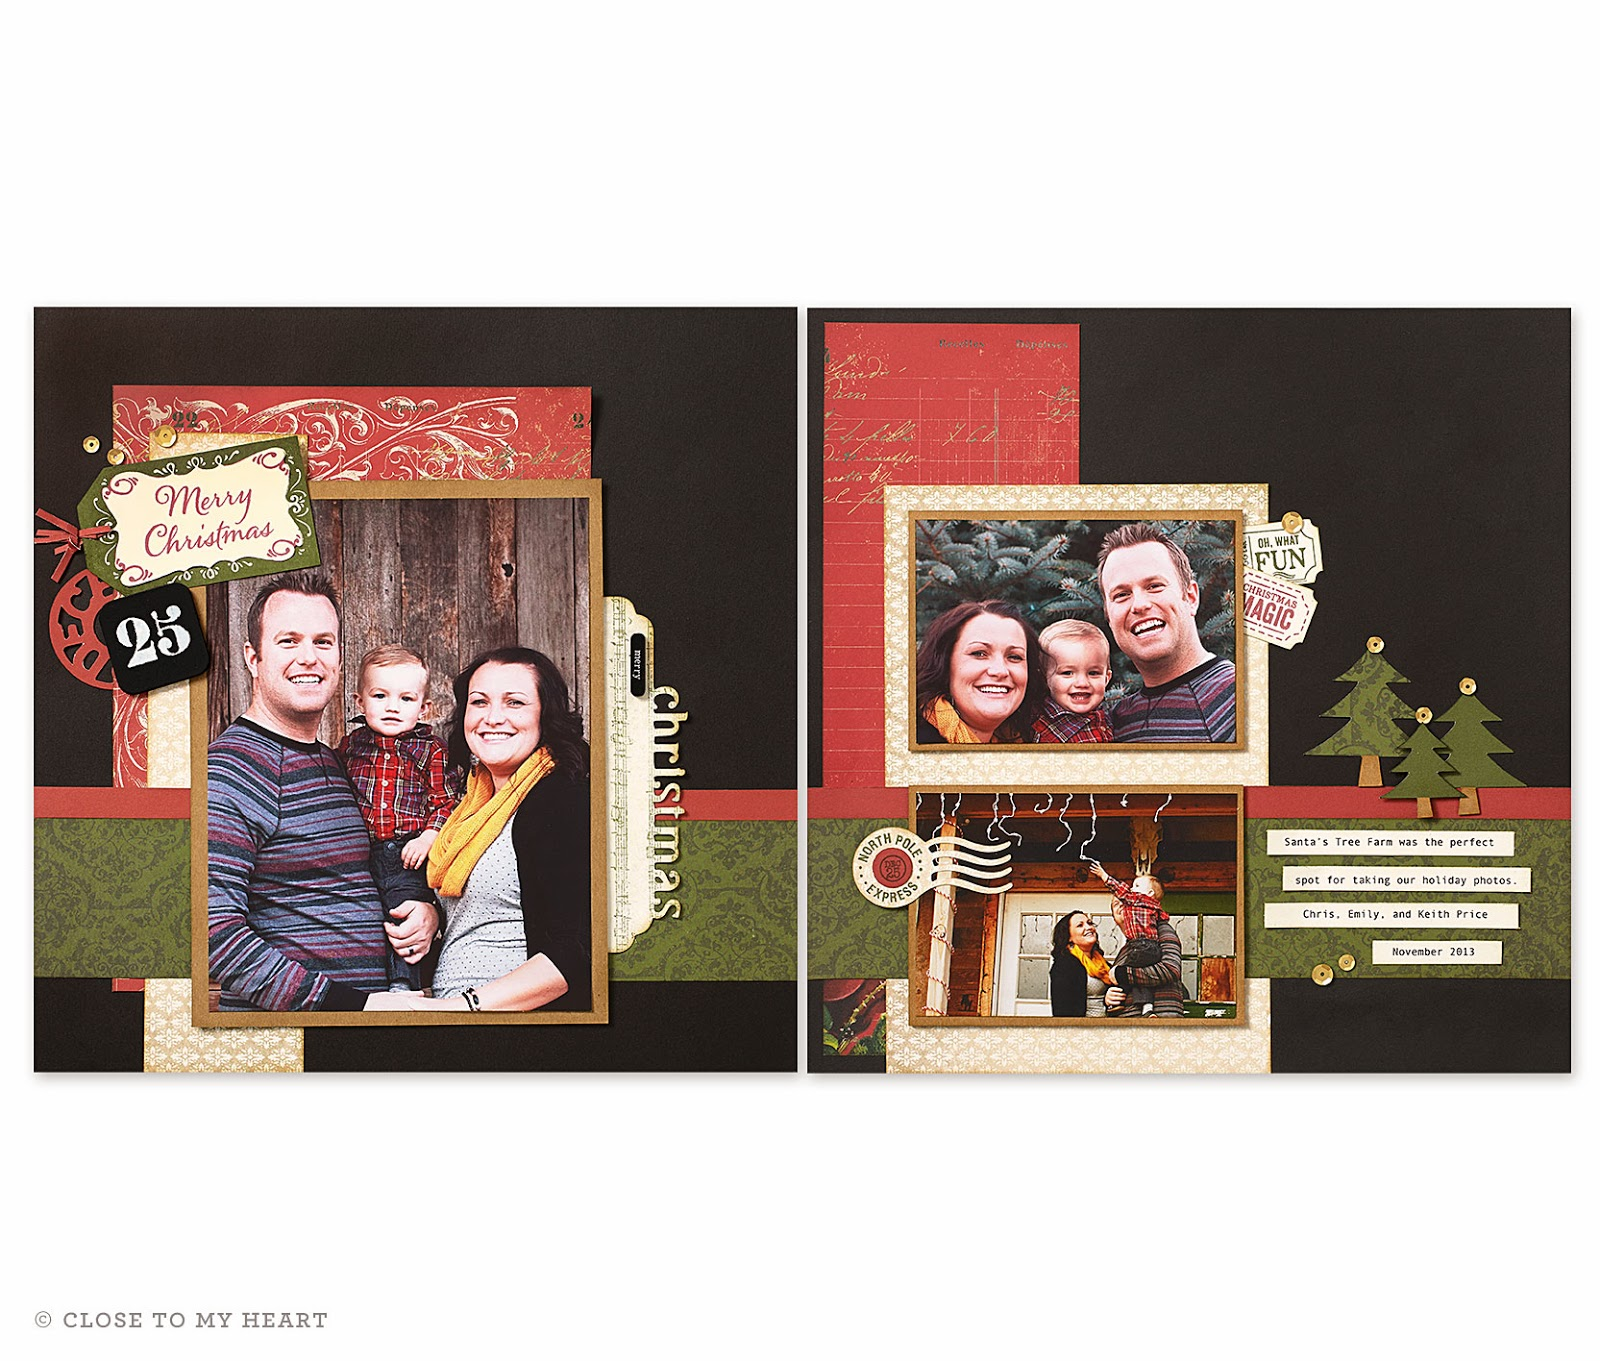 CTMH Yuletide Carol Holiday Scrapbook Layout